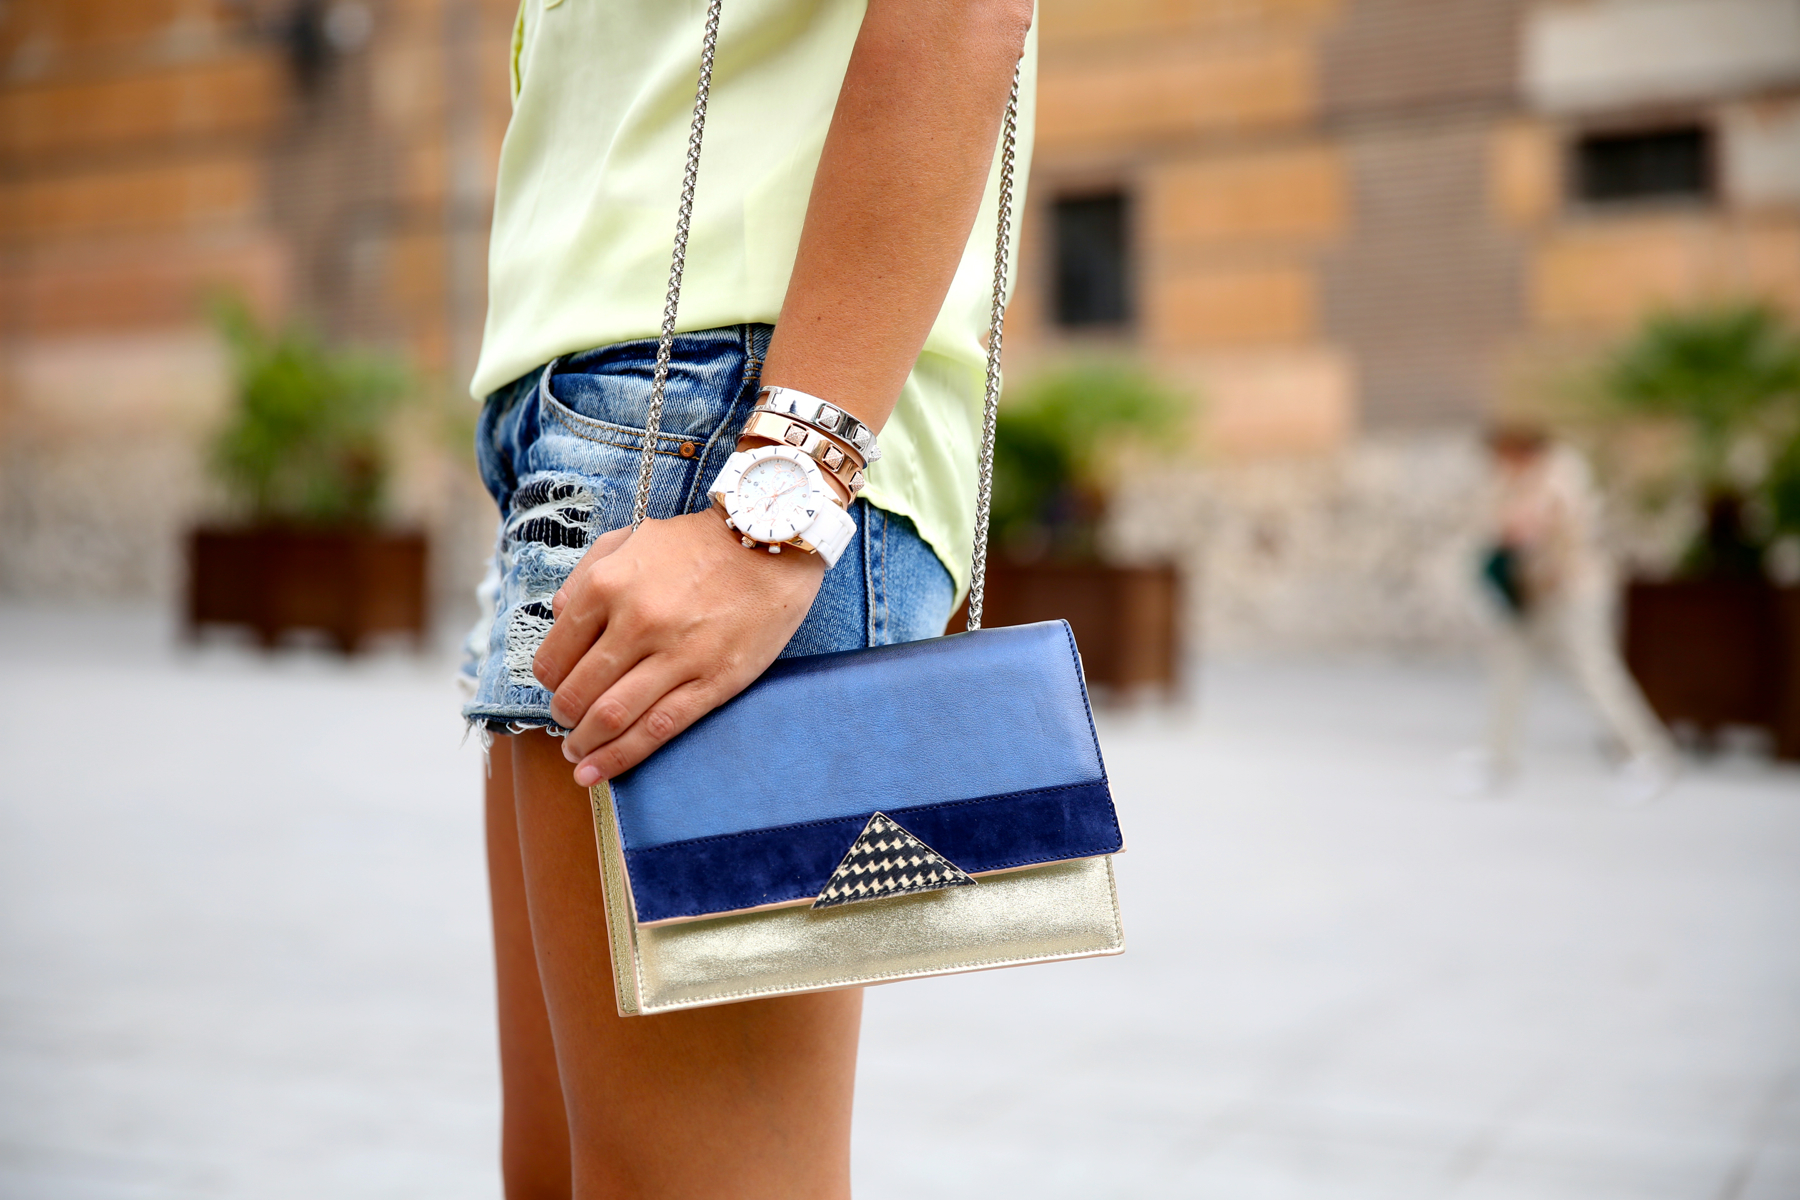 trendy_taste-look-outfit-street_style-ootd-blog-blogger-fashion_spain-moda_españa-yellow_blouse-camisa_amarilla-denim_shorts-shorts_vaqueros-sandalias_romanas-gladiators-mas34-folli_follie-3